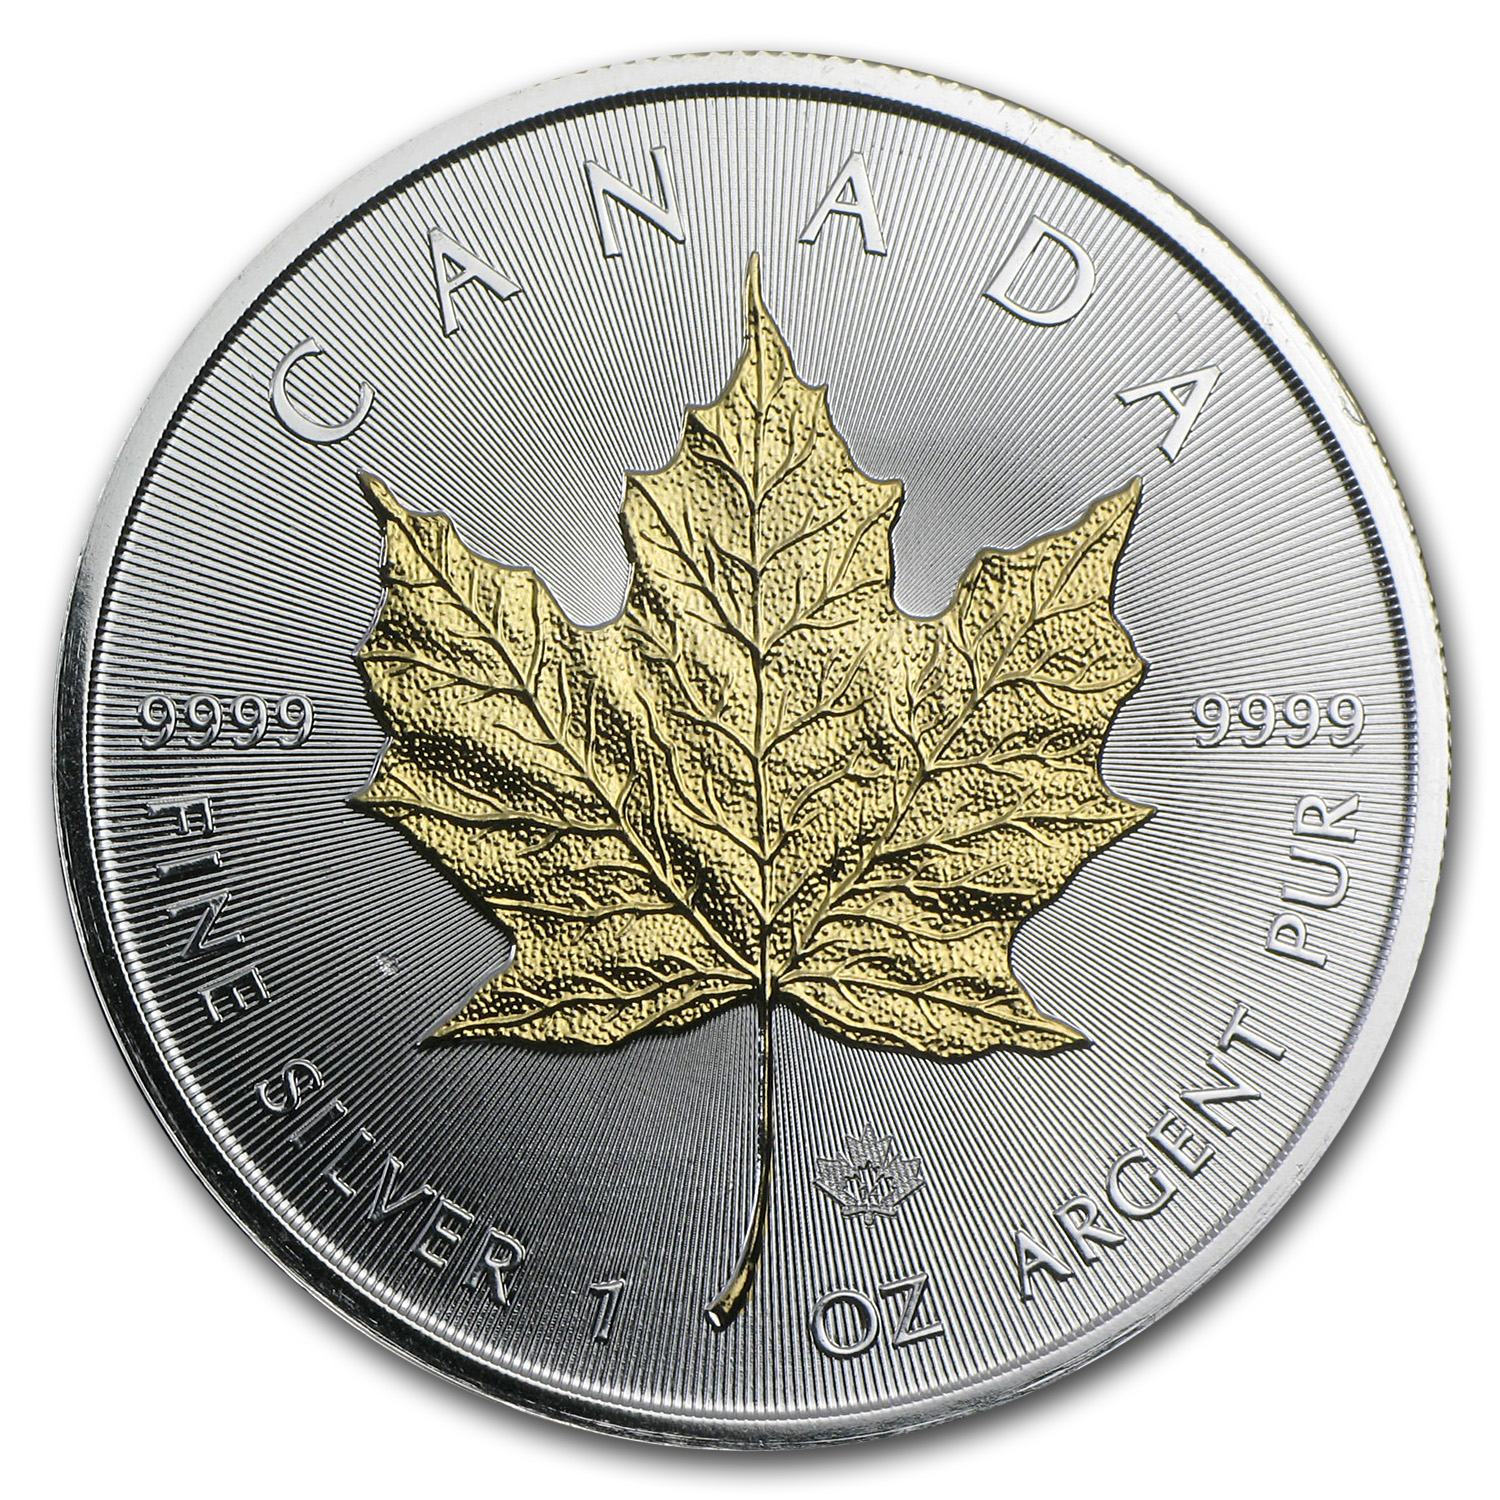 2014 1 oz Silver Canadian Maple Leaf BU (Gilded)